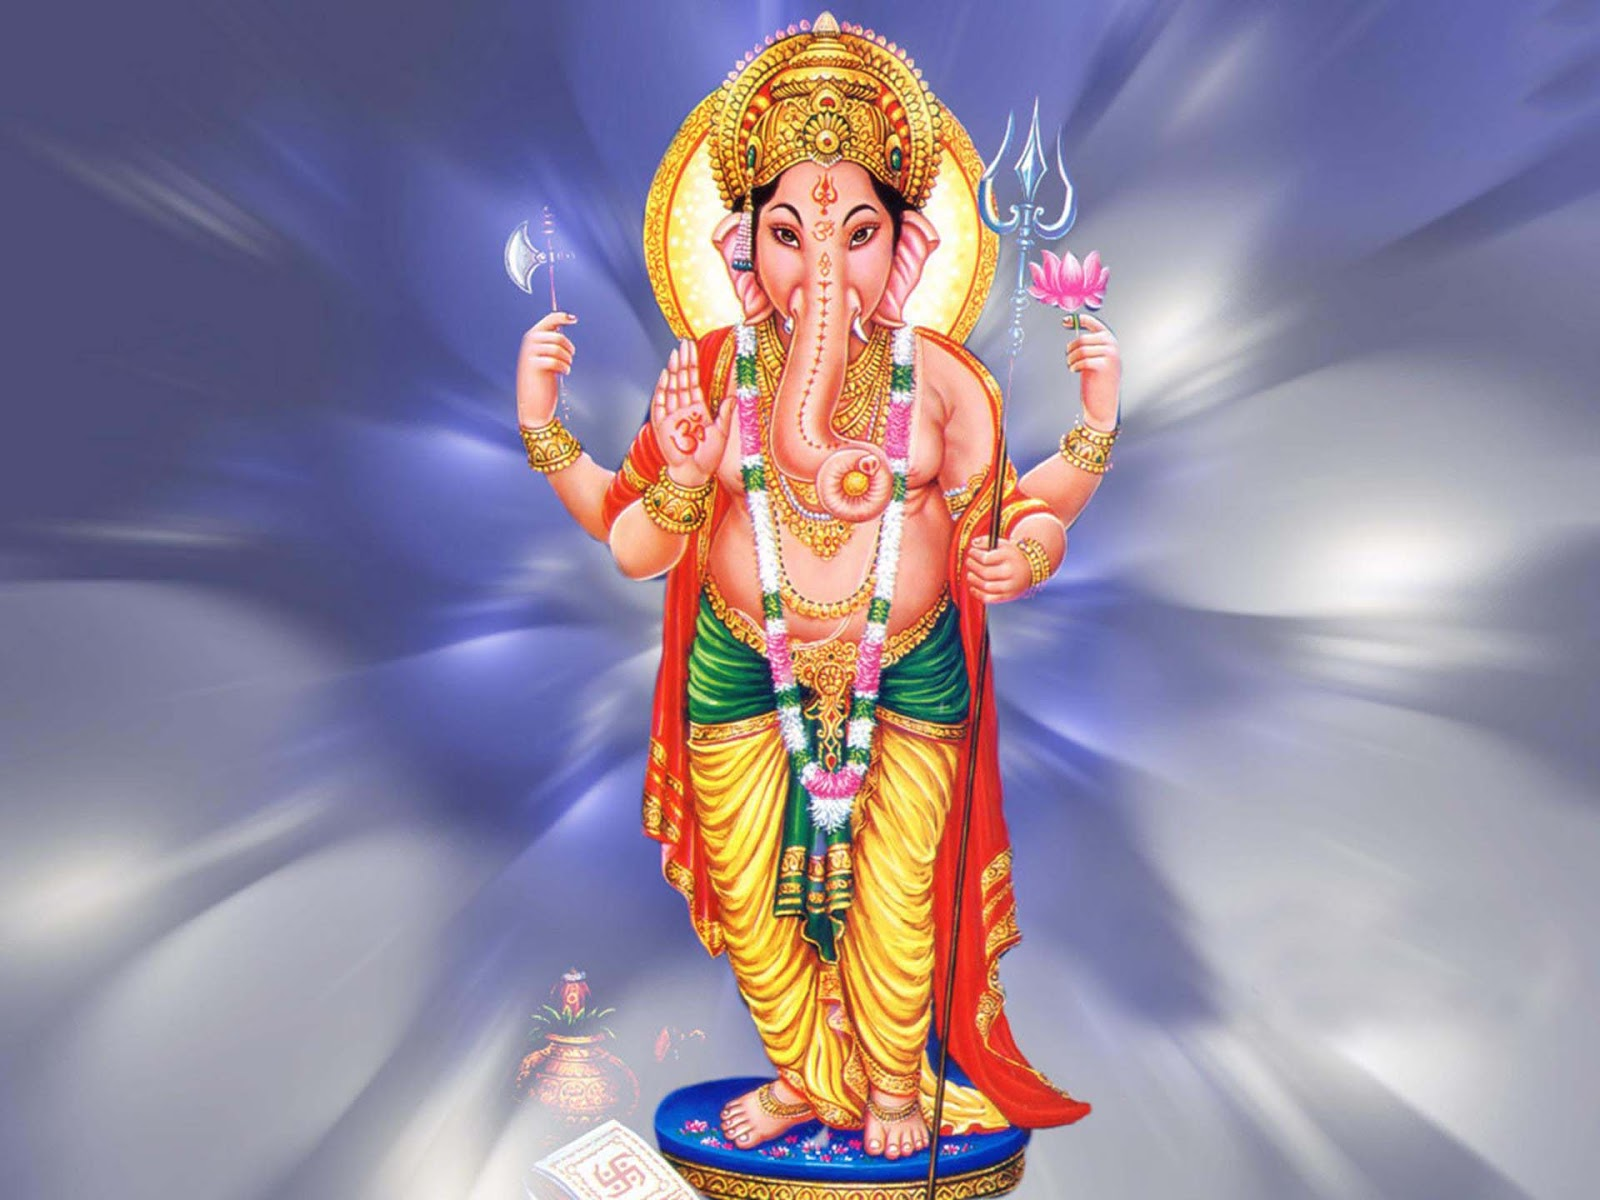 2019 Shri Ganesh Wallpaper Hd Best 2019 Collection